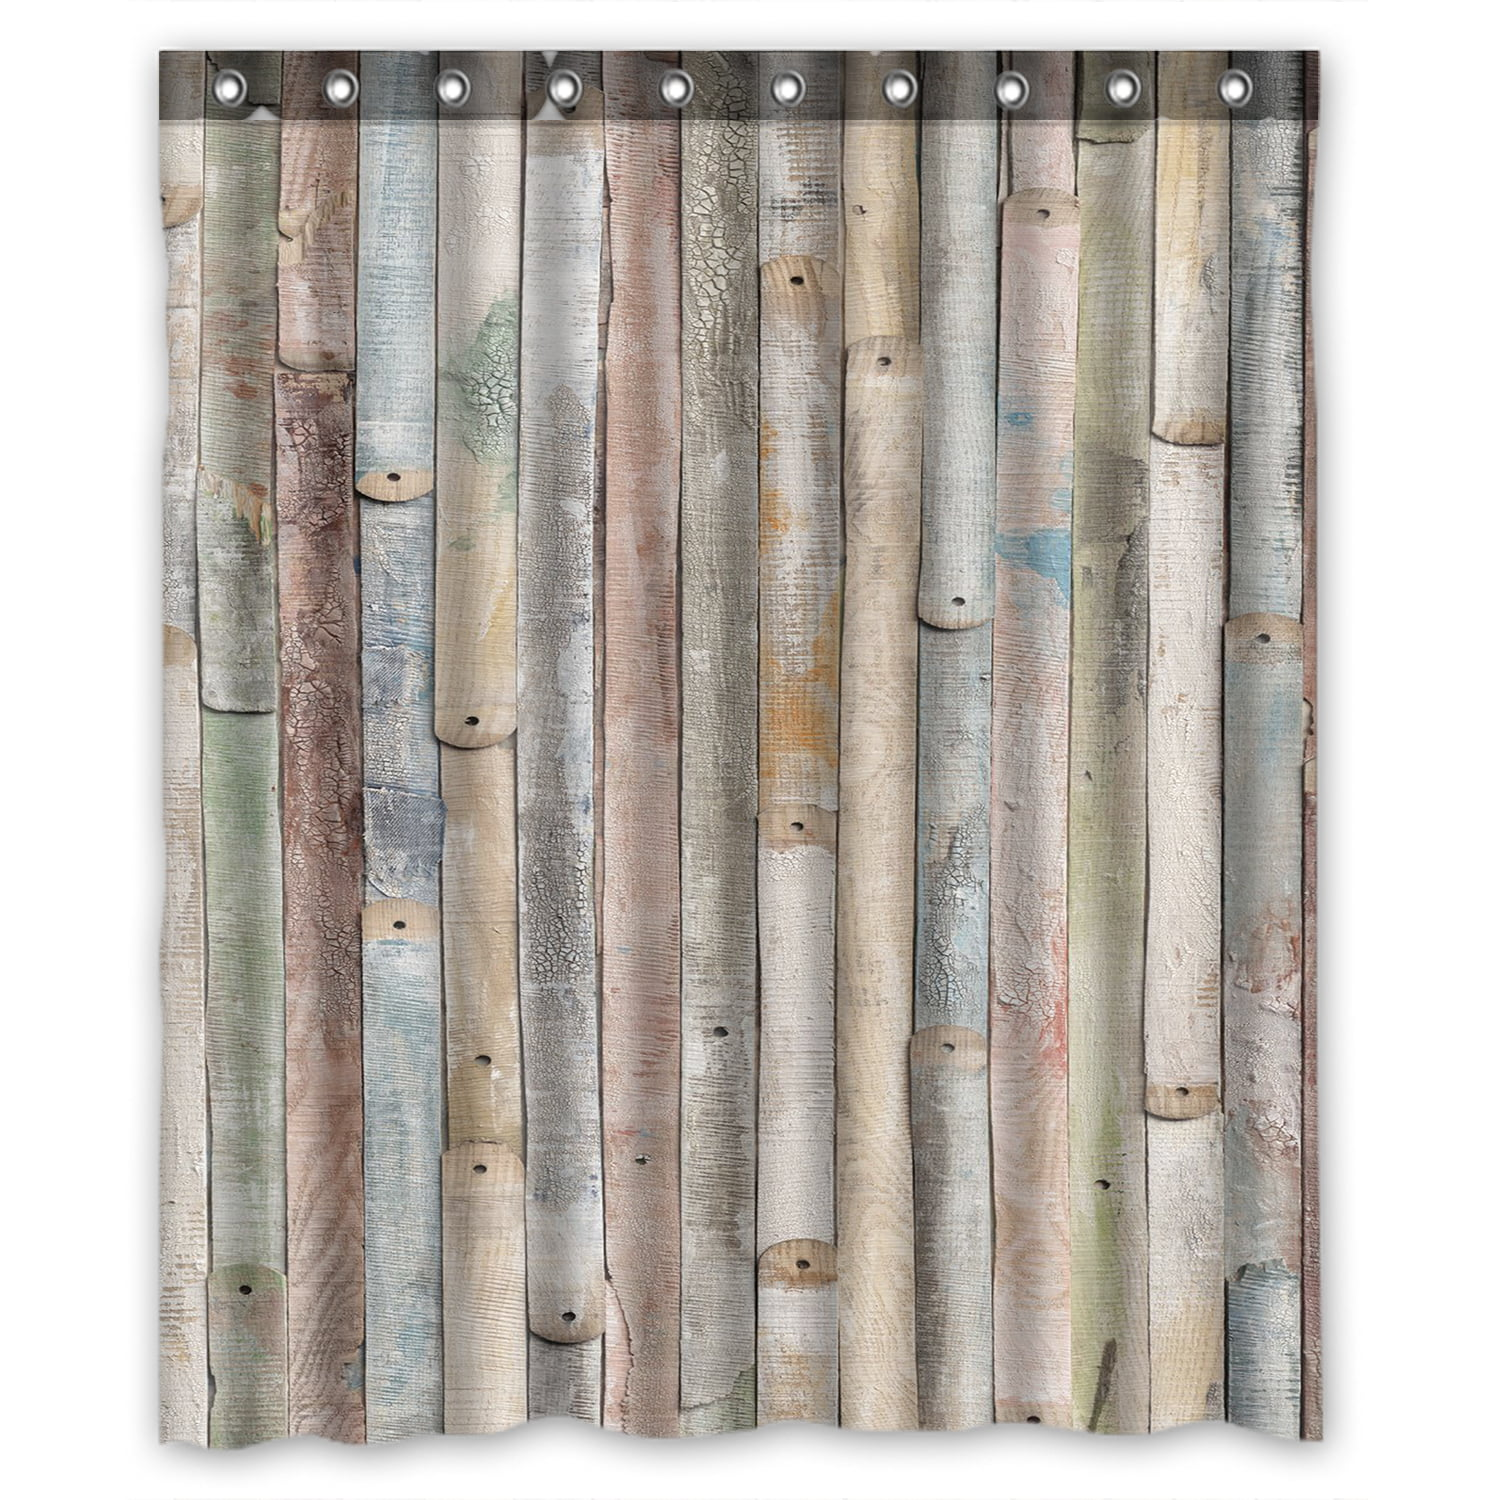 70 Inches Pink Brown Fabric Bathroom Decor Set with Hooks Sweet Spring Flowering Branch on Weathered Wooden Blooming Orchard Ambesonne Rustic Home Decor Shower Curtain